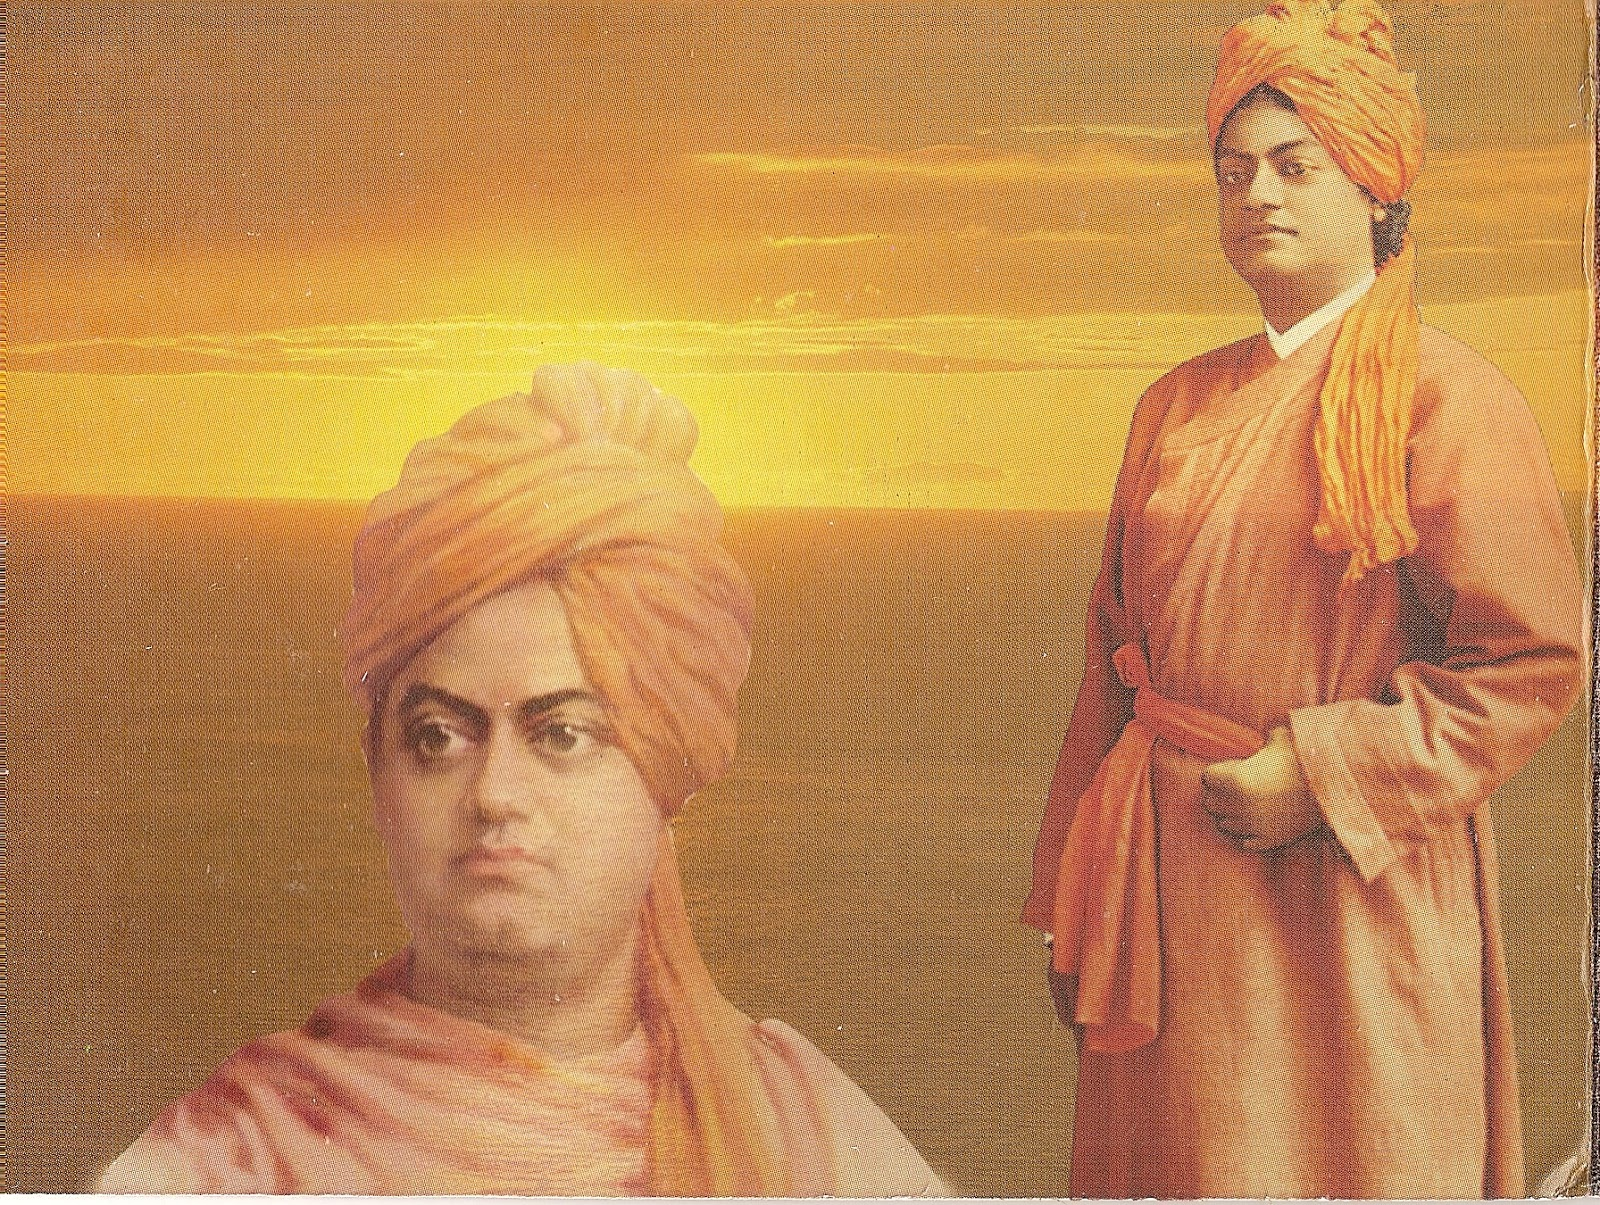 1000 words essay on swami vivekananda in english 41 essays and stories swami vivekananda wrote extensively during his short life span always maintaining that he had a message for the world, he used words to reach out to people of his time and beyond he rather enjoyed the process of writing, often scribbling his thoughts on pieces of papers and even corners.